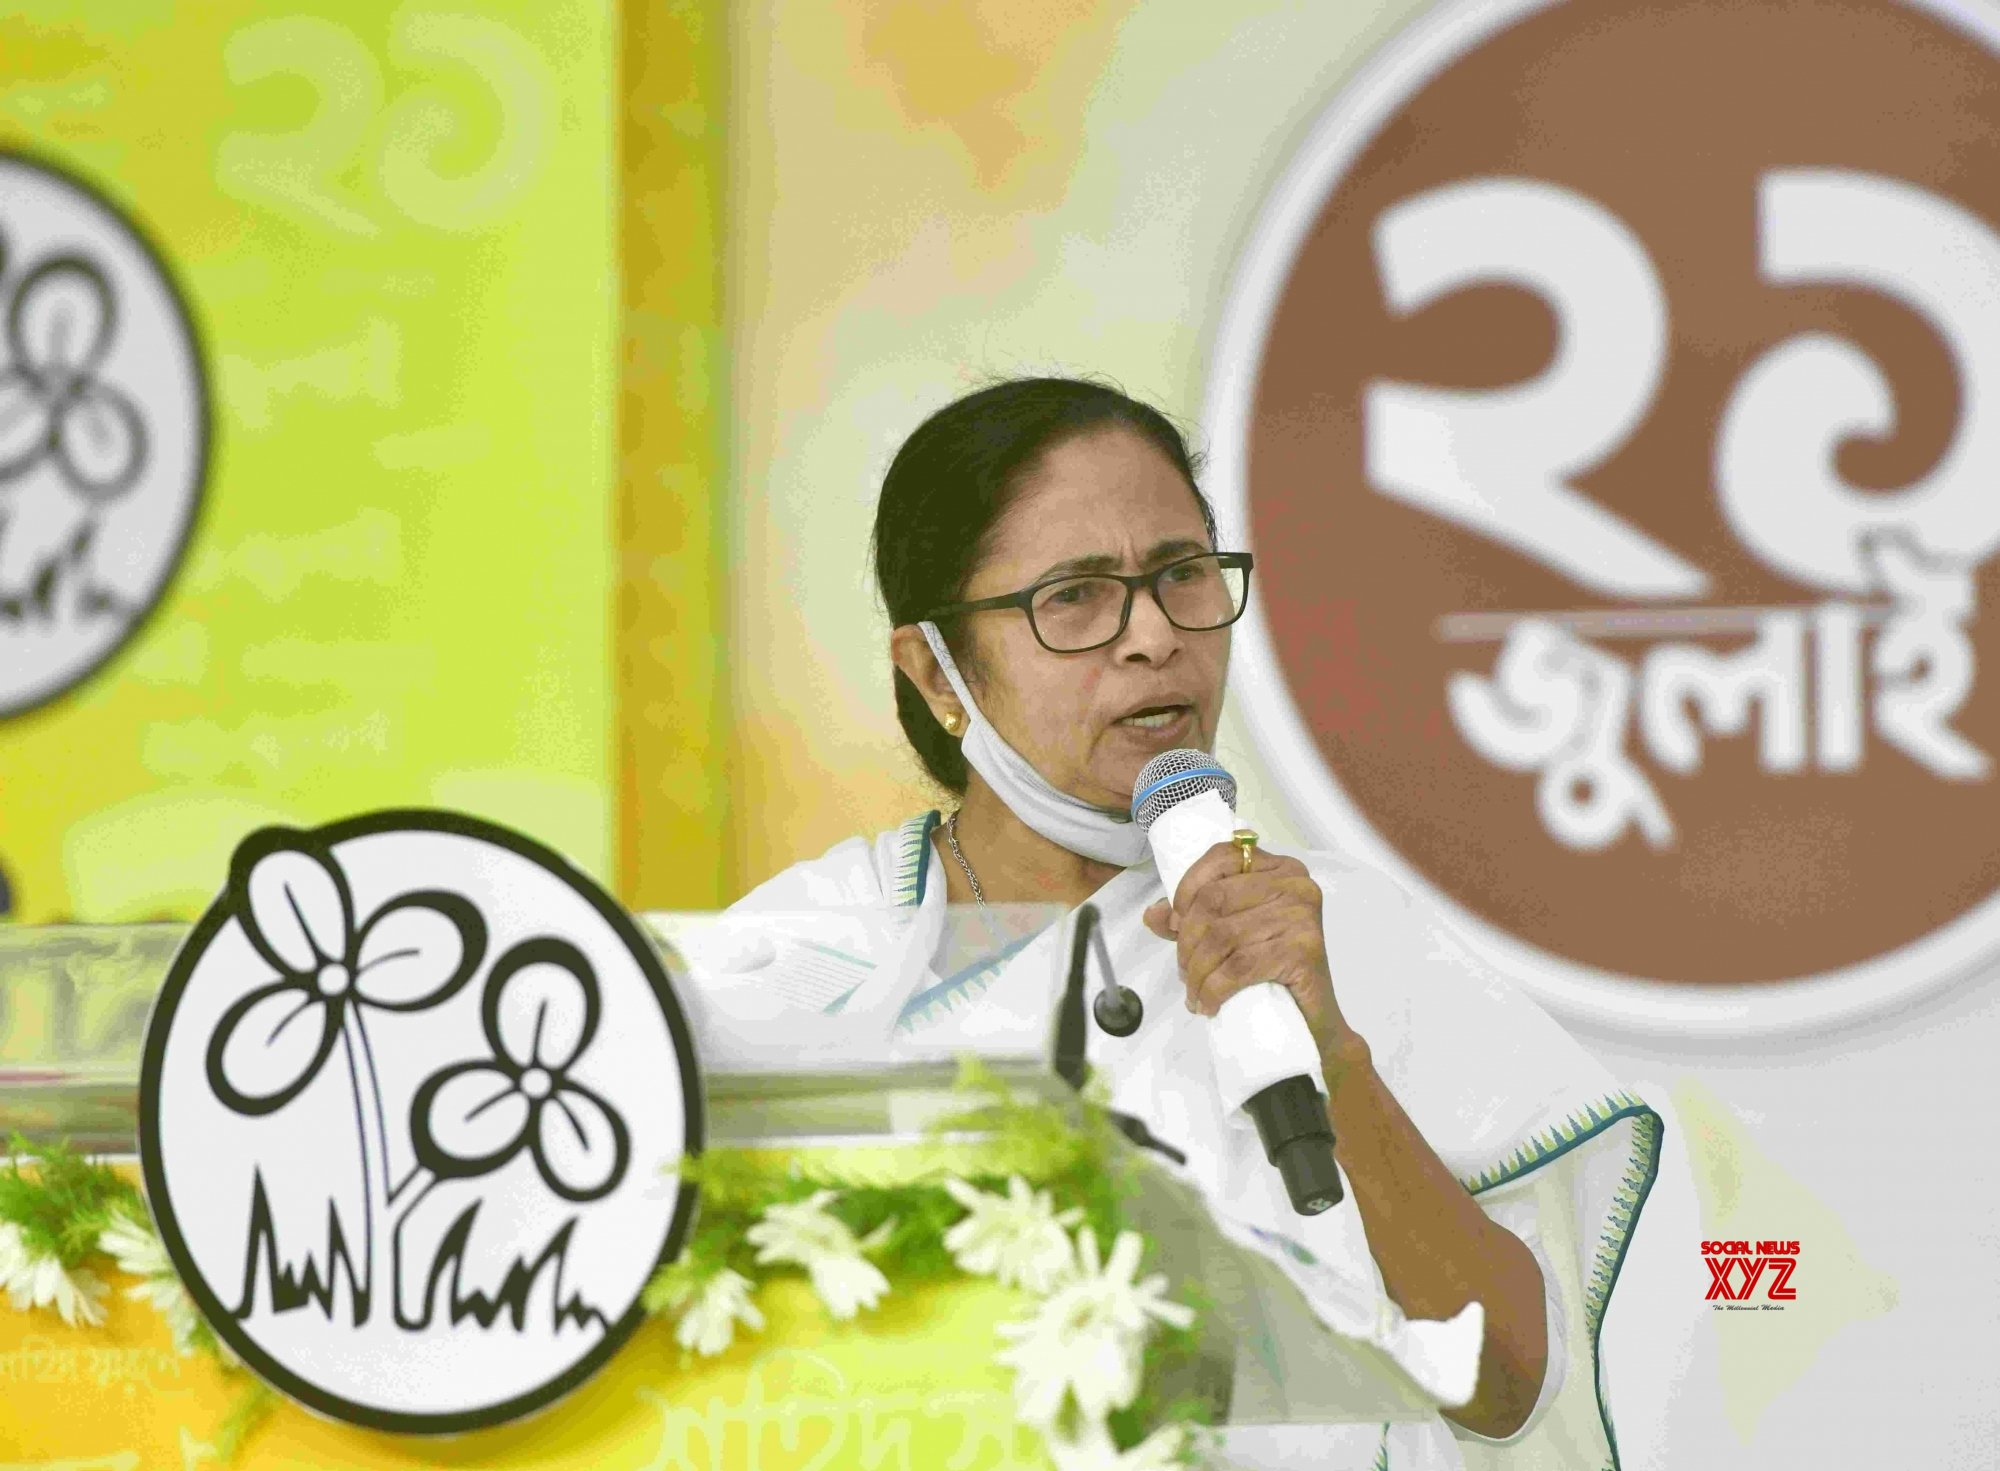 Kolkata : West Bengal Chief Minister and TMC supremo, Mamata Banerjee during 21 July TMC Martyrs day virtually observed at Kalighat her residence in Kolkata on July 21, 2021 #Gallery